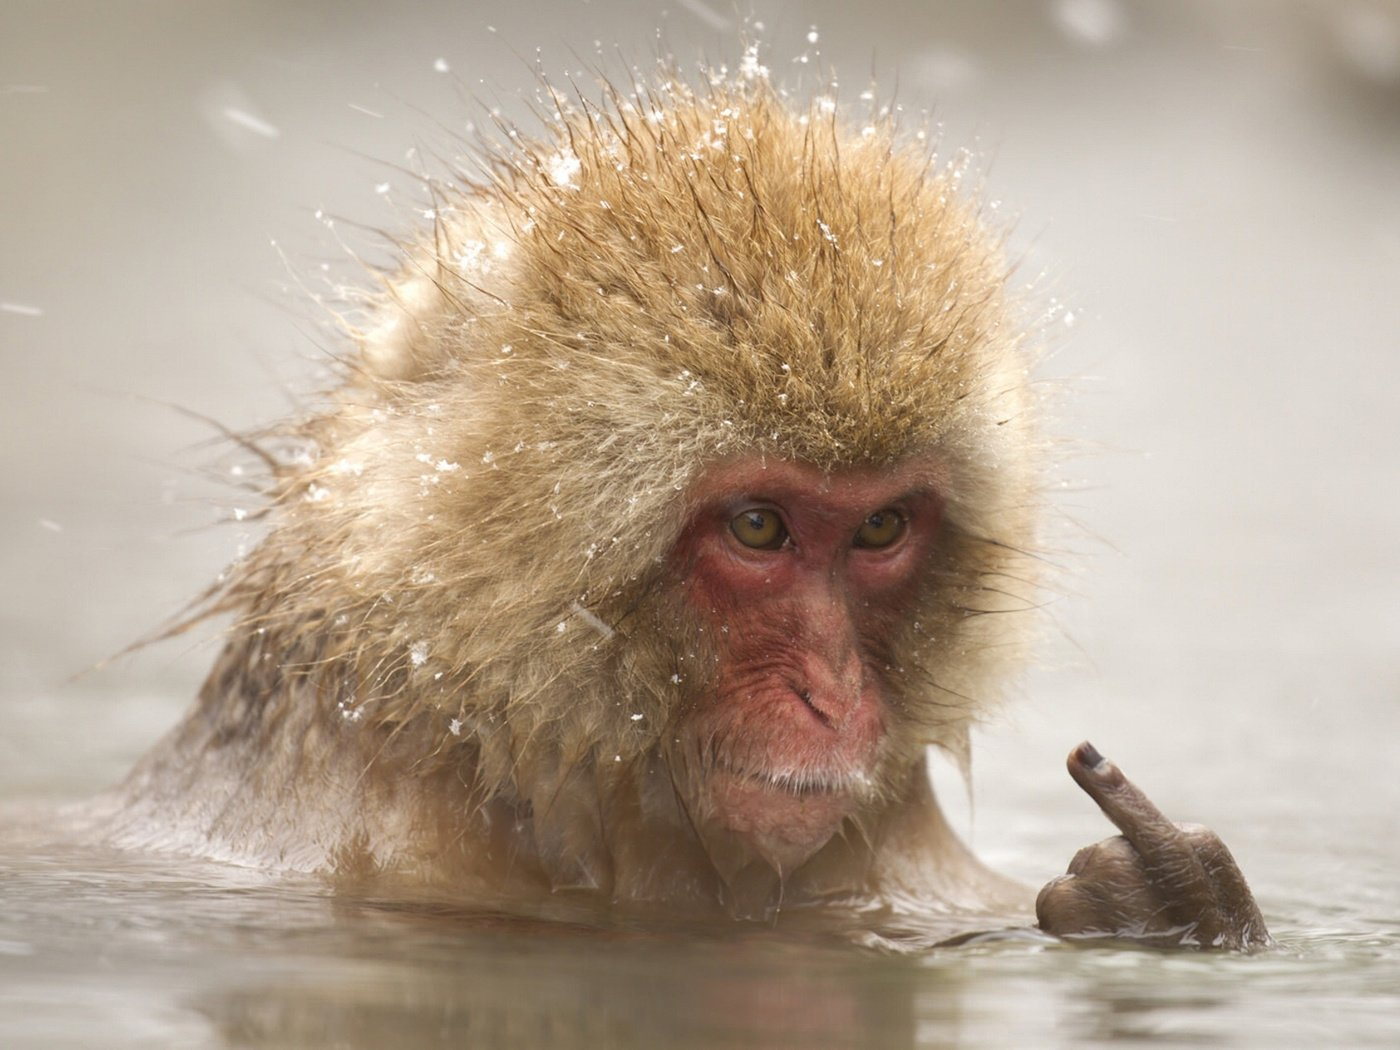 the japanese macaque A popular tourist draw for nagano, japan, are the snow monkeys, or japanese macaques, that are drawn to the area - particularly during inclement weather - by the local hot springs.